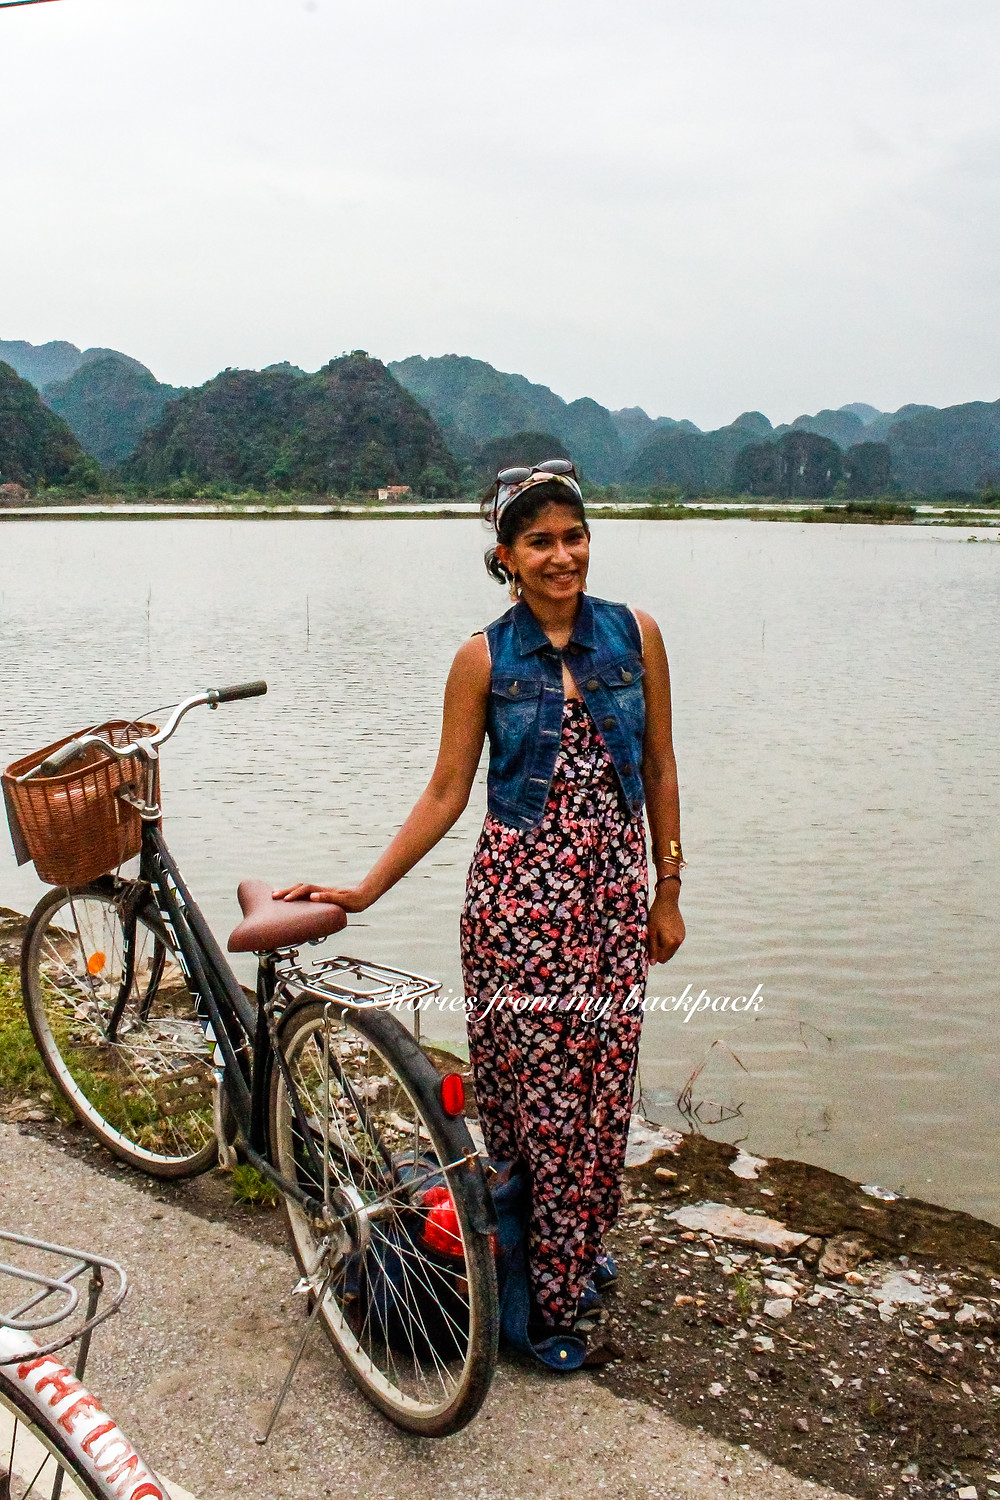 Activities in Tam Coc, Bicycle hire in Tam Coc, Homestay in Tam Coc, Homestay in Ninh Binh, Travel in Ninh Binh, Day trip from Hanoi, Tam Coc